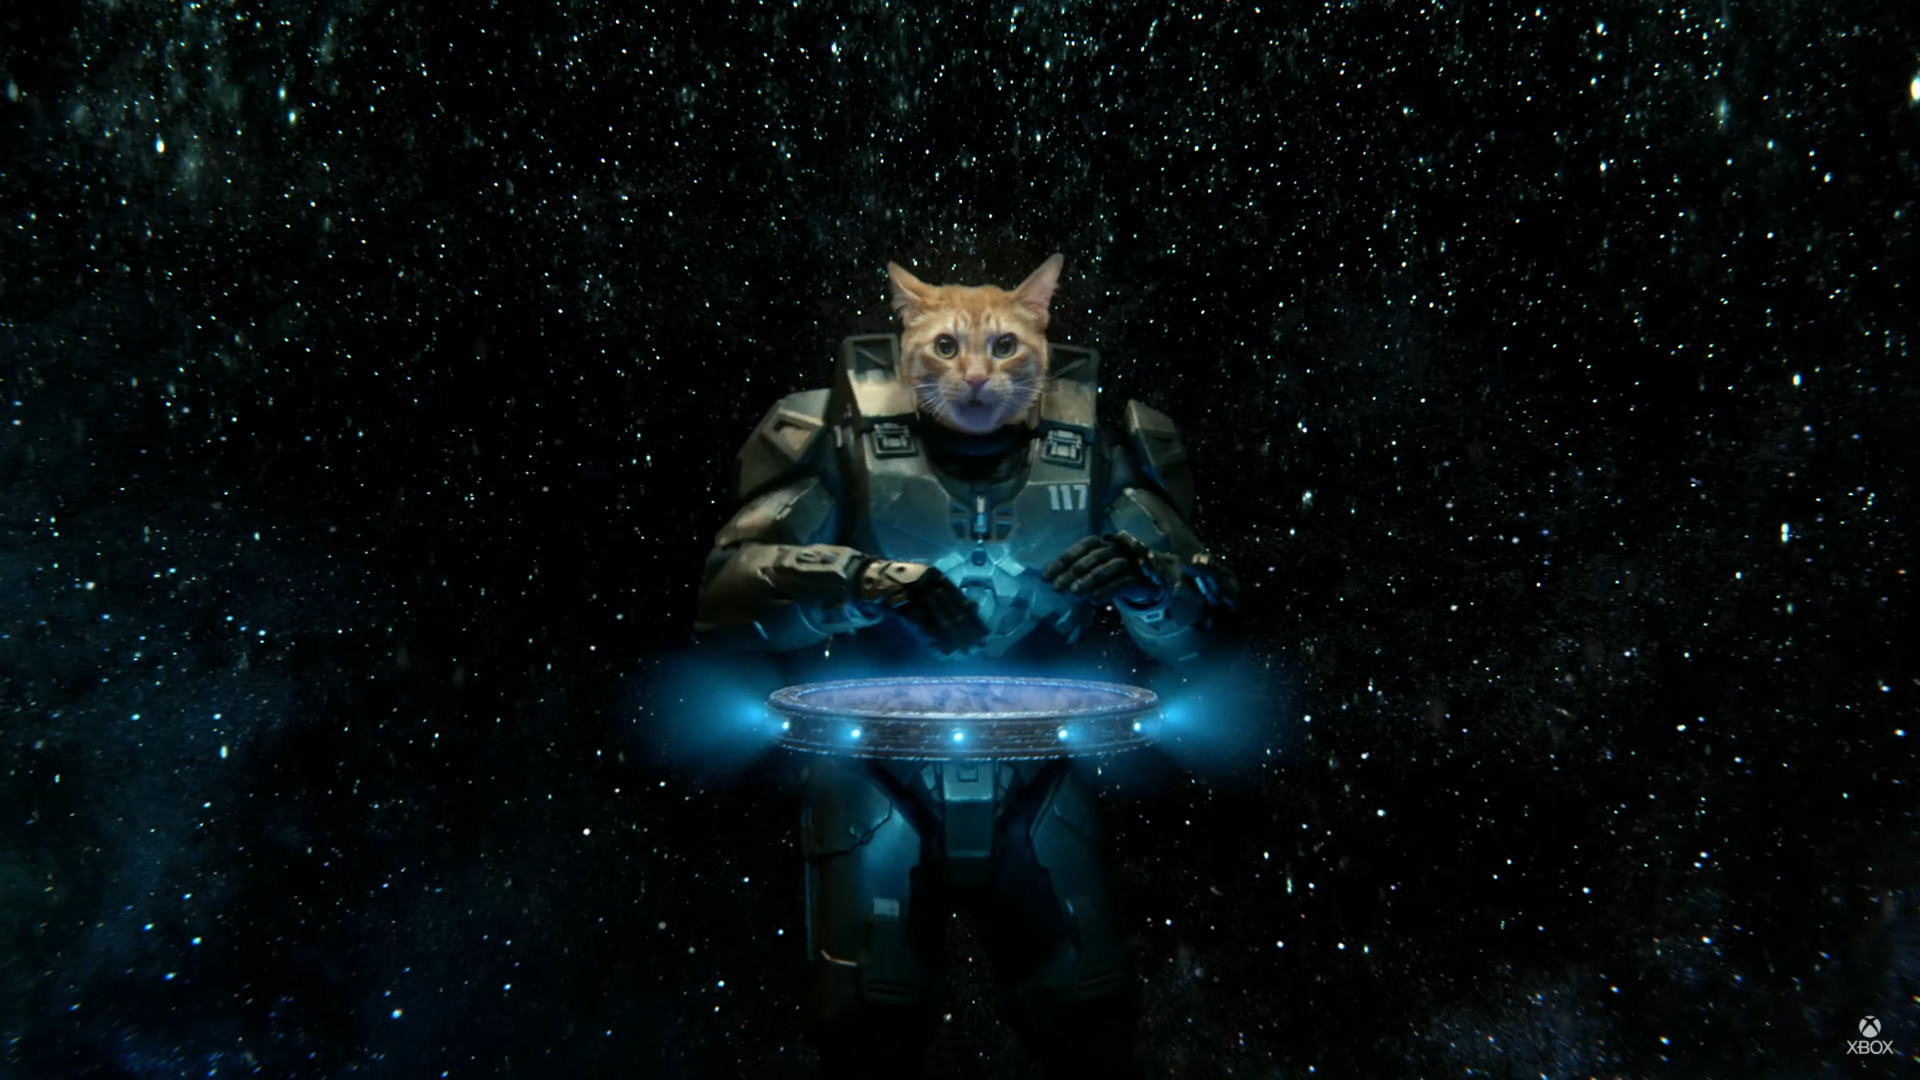 A cat wearing Master Chief's armor, in space, as a DJ